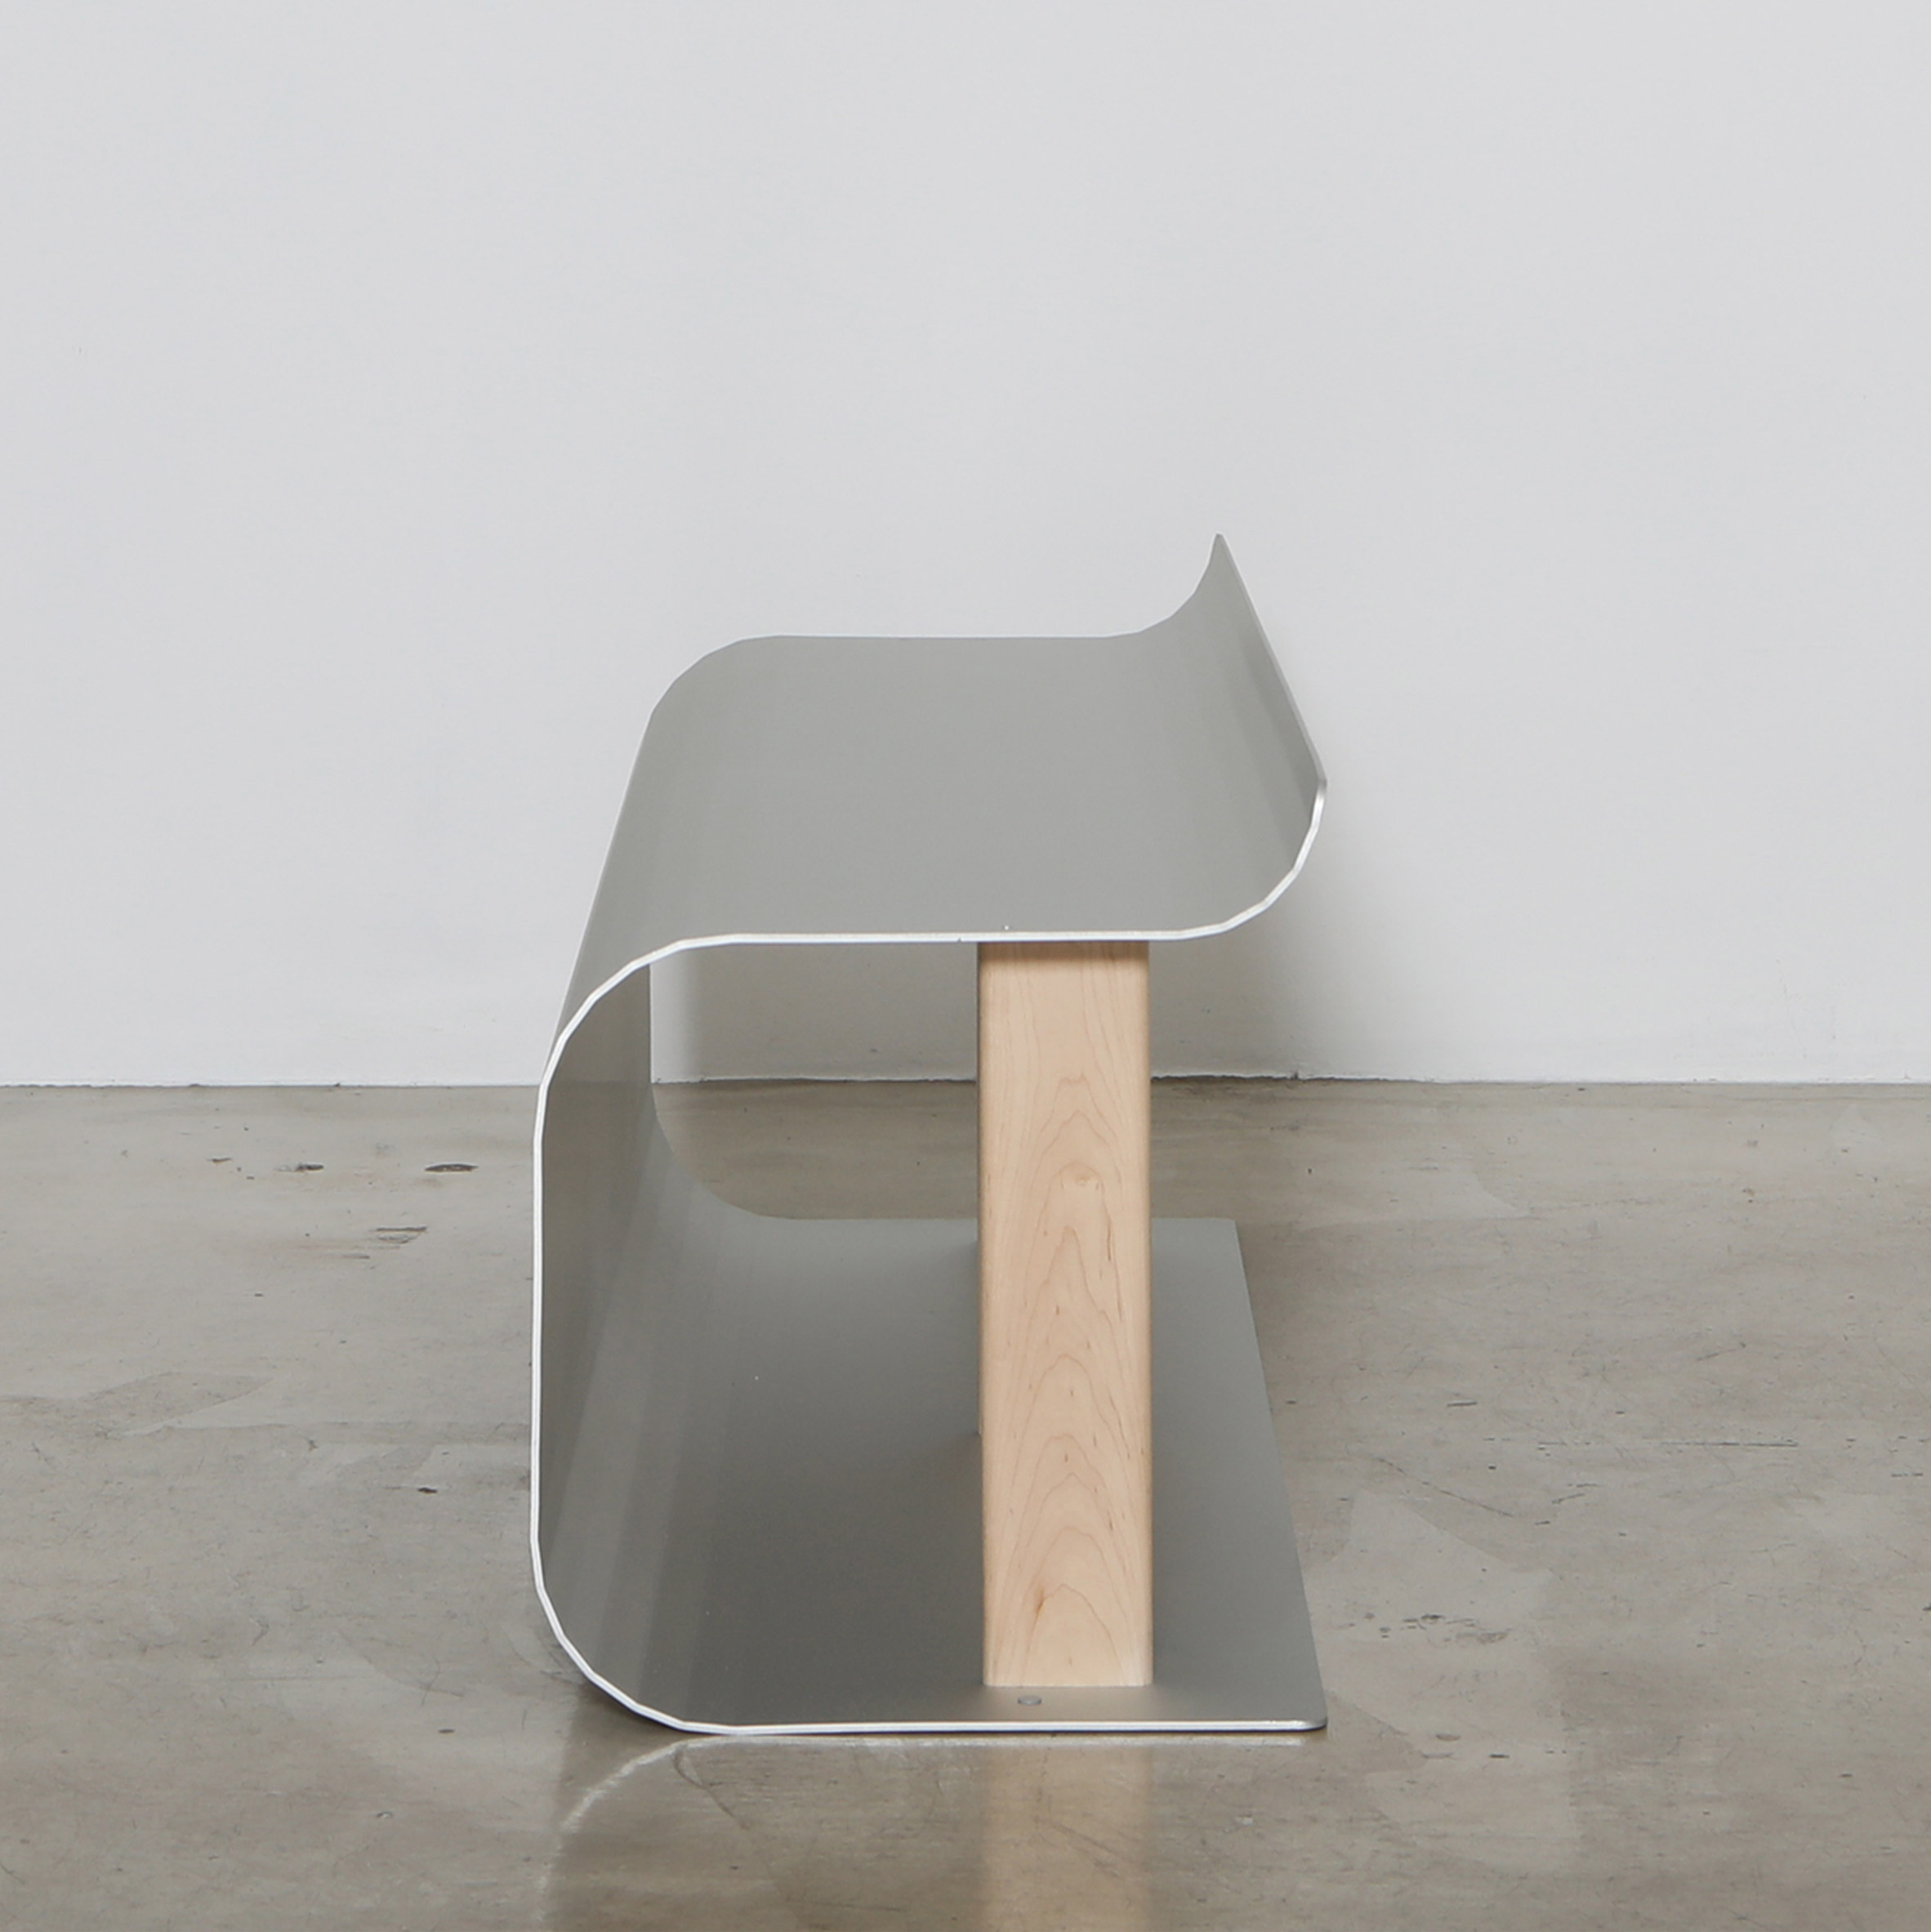 Curvature Series by Useful Workshop